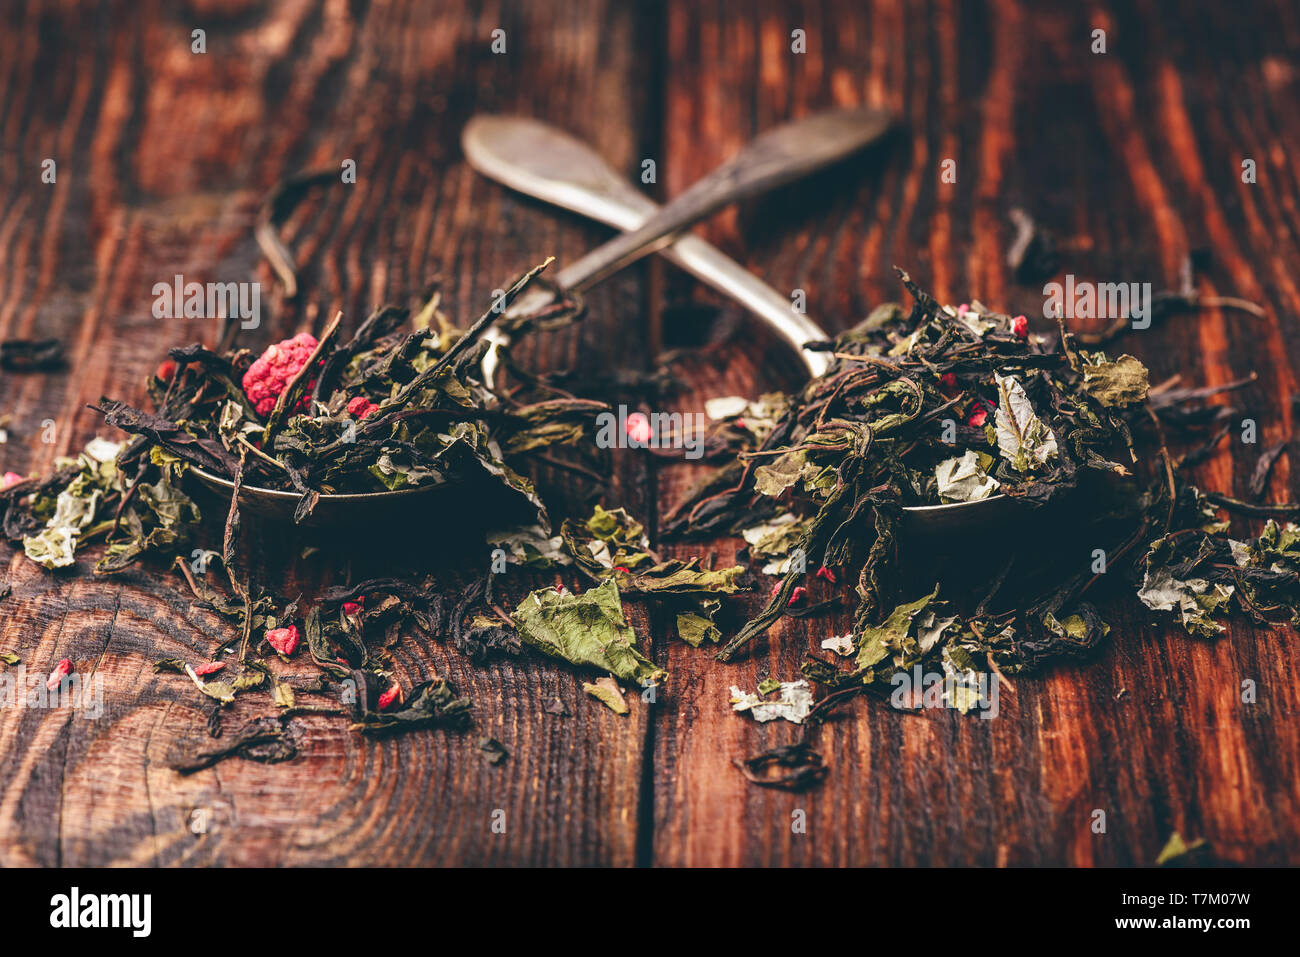 Two spoonfuls of raspberry herbal tea over wooden surface - Stock Image